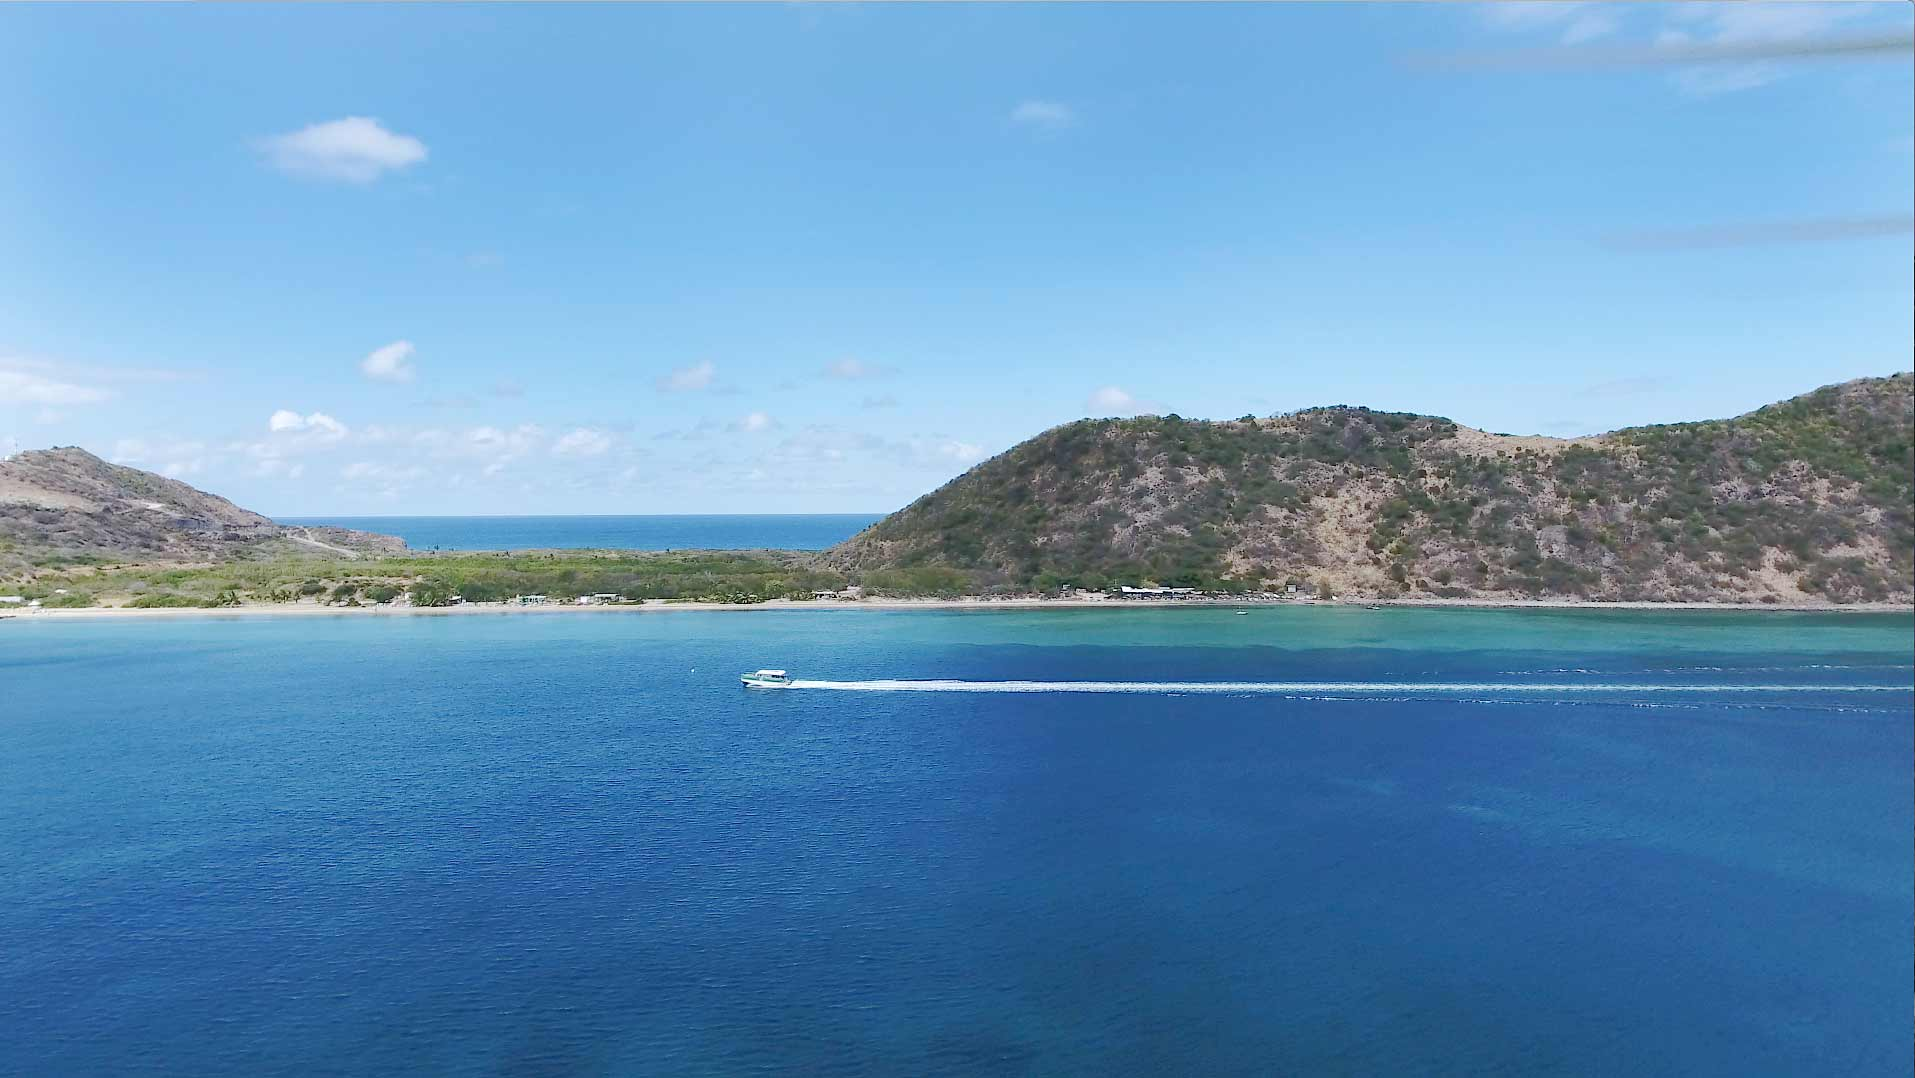 Drone capture of Frigate Bay in St. Kitts